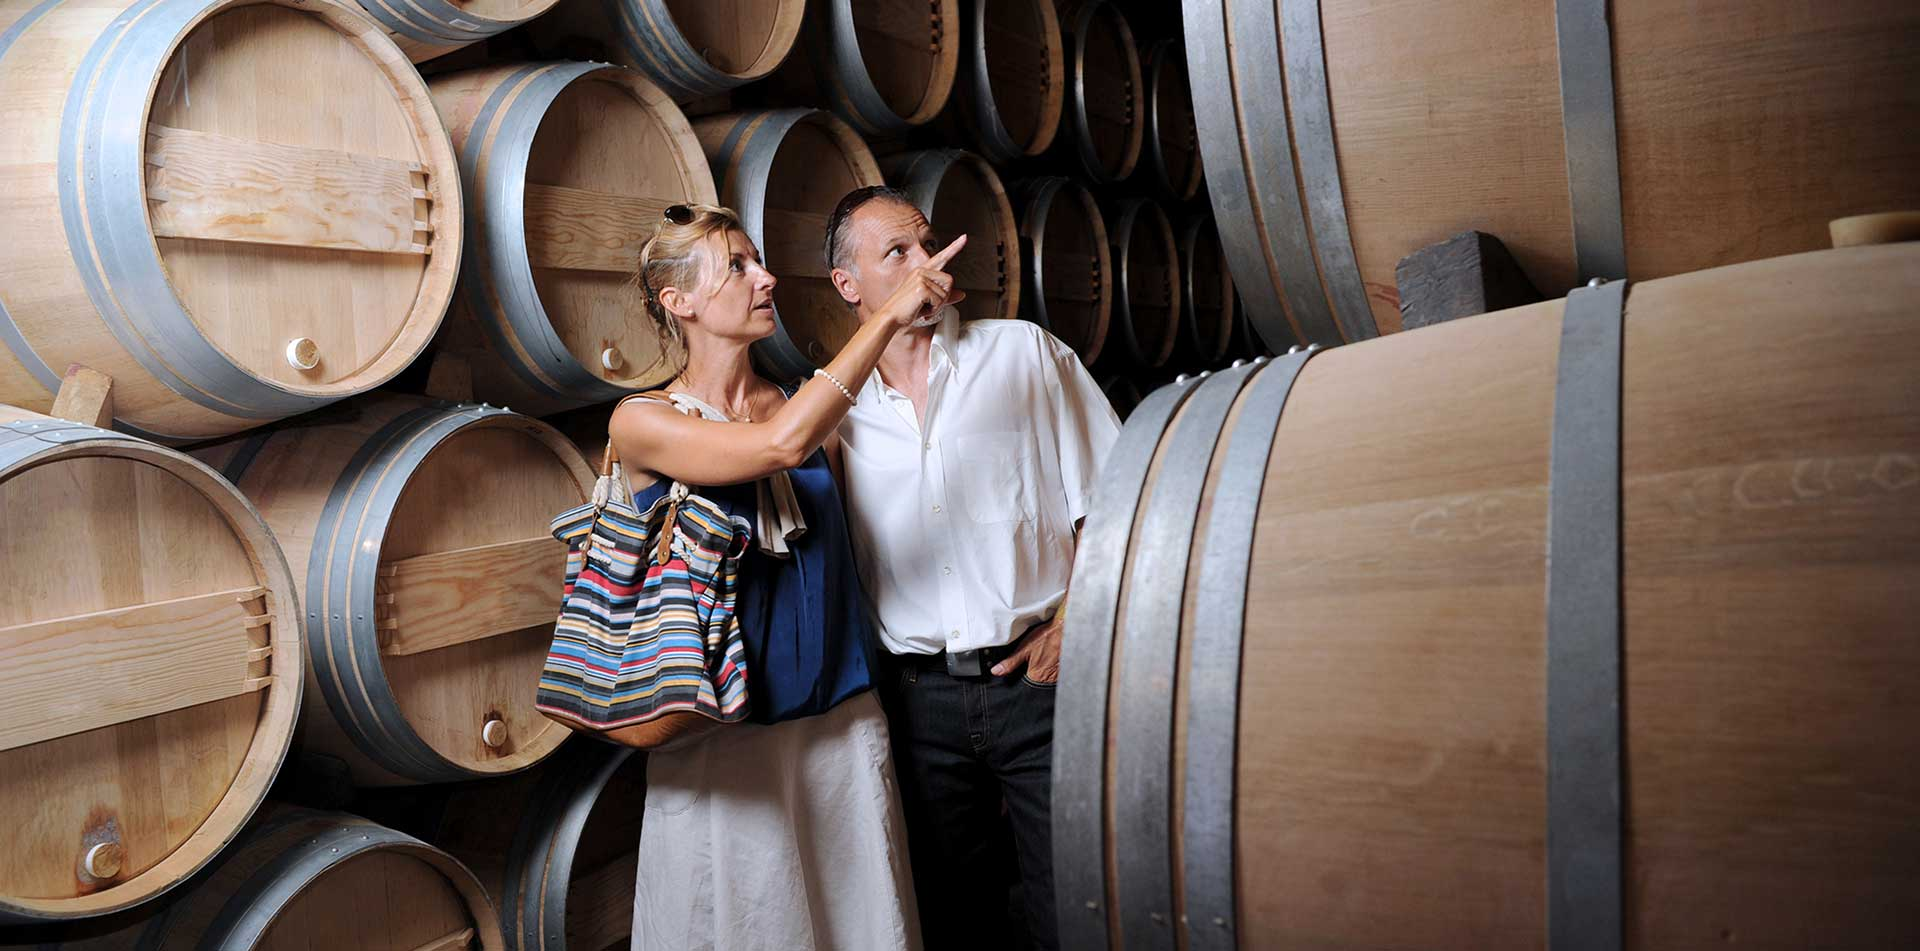 Europe Portugal Spain Douro river cruising guests enjoy looking at wine barrels- luxury vacation destinations